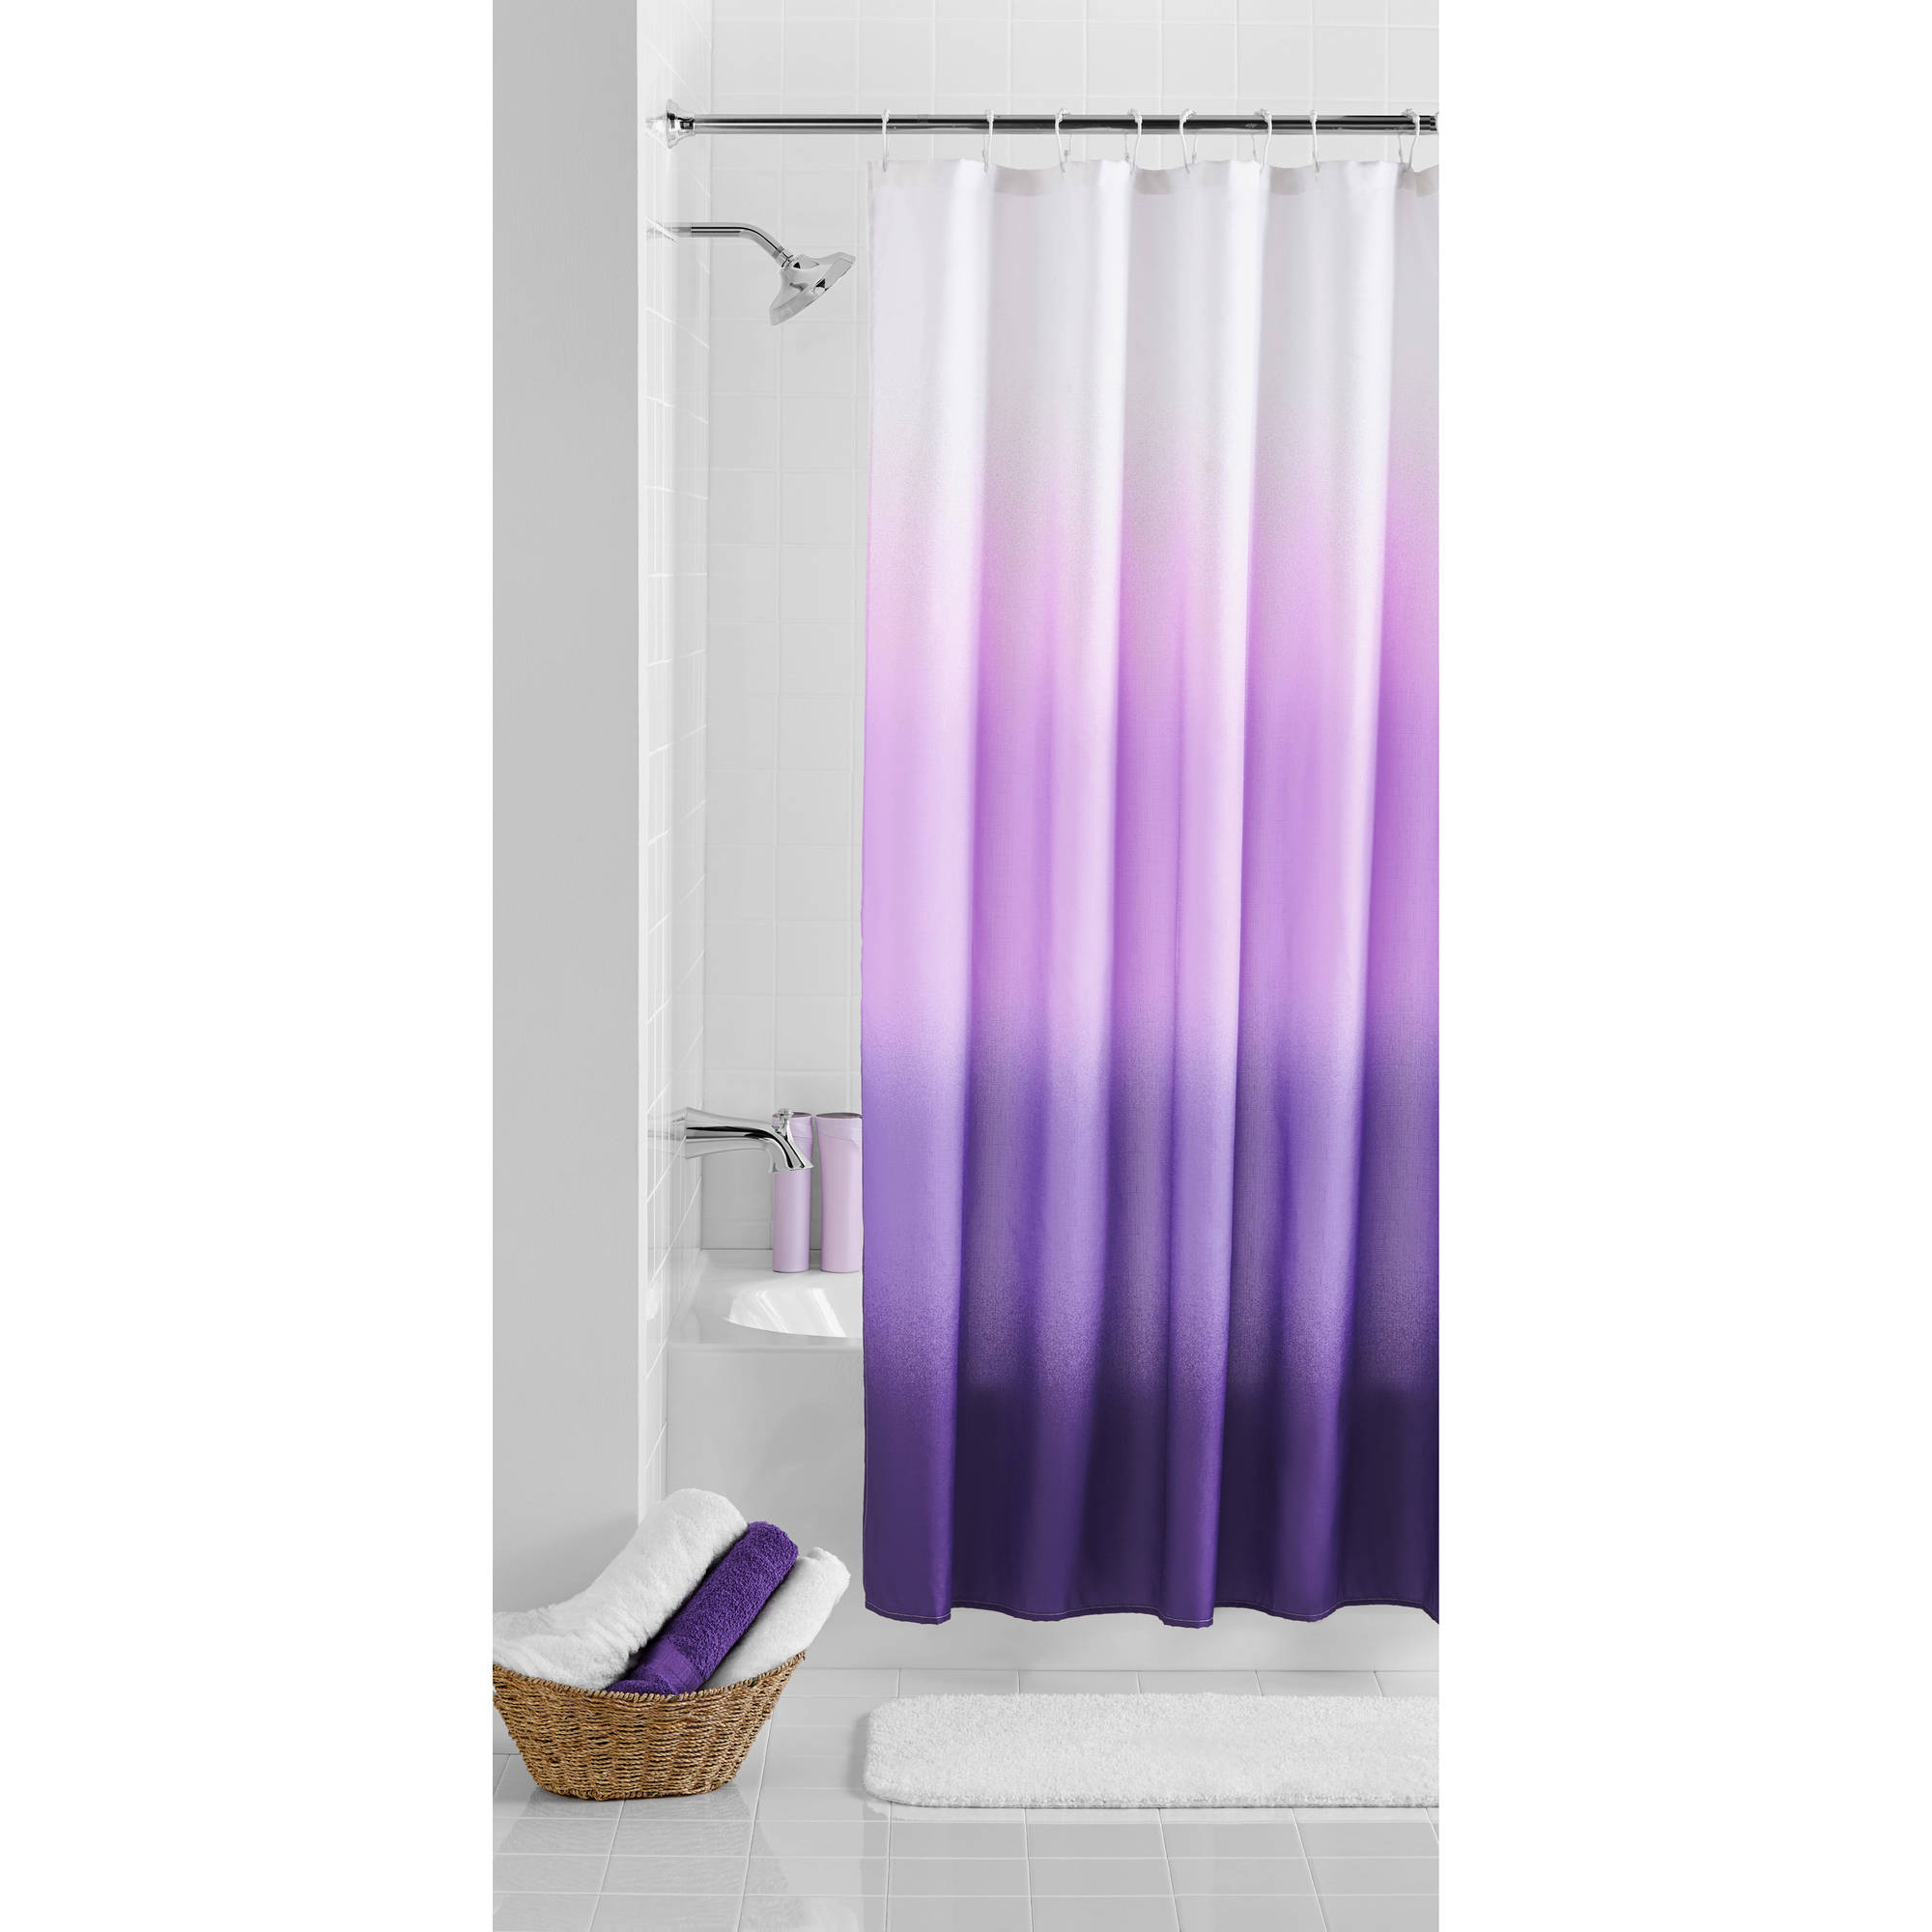 Mainstays Ombre Shower Curtain